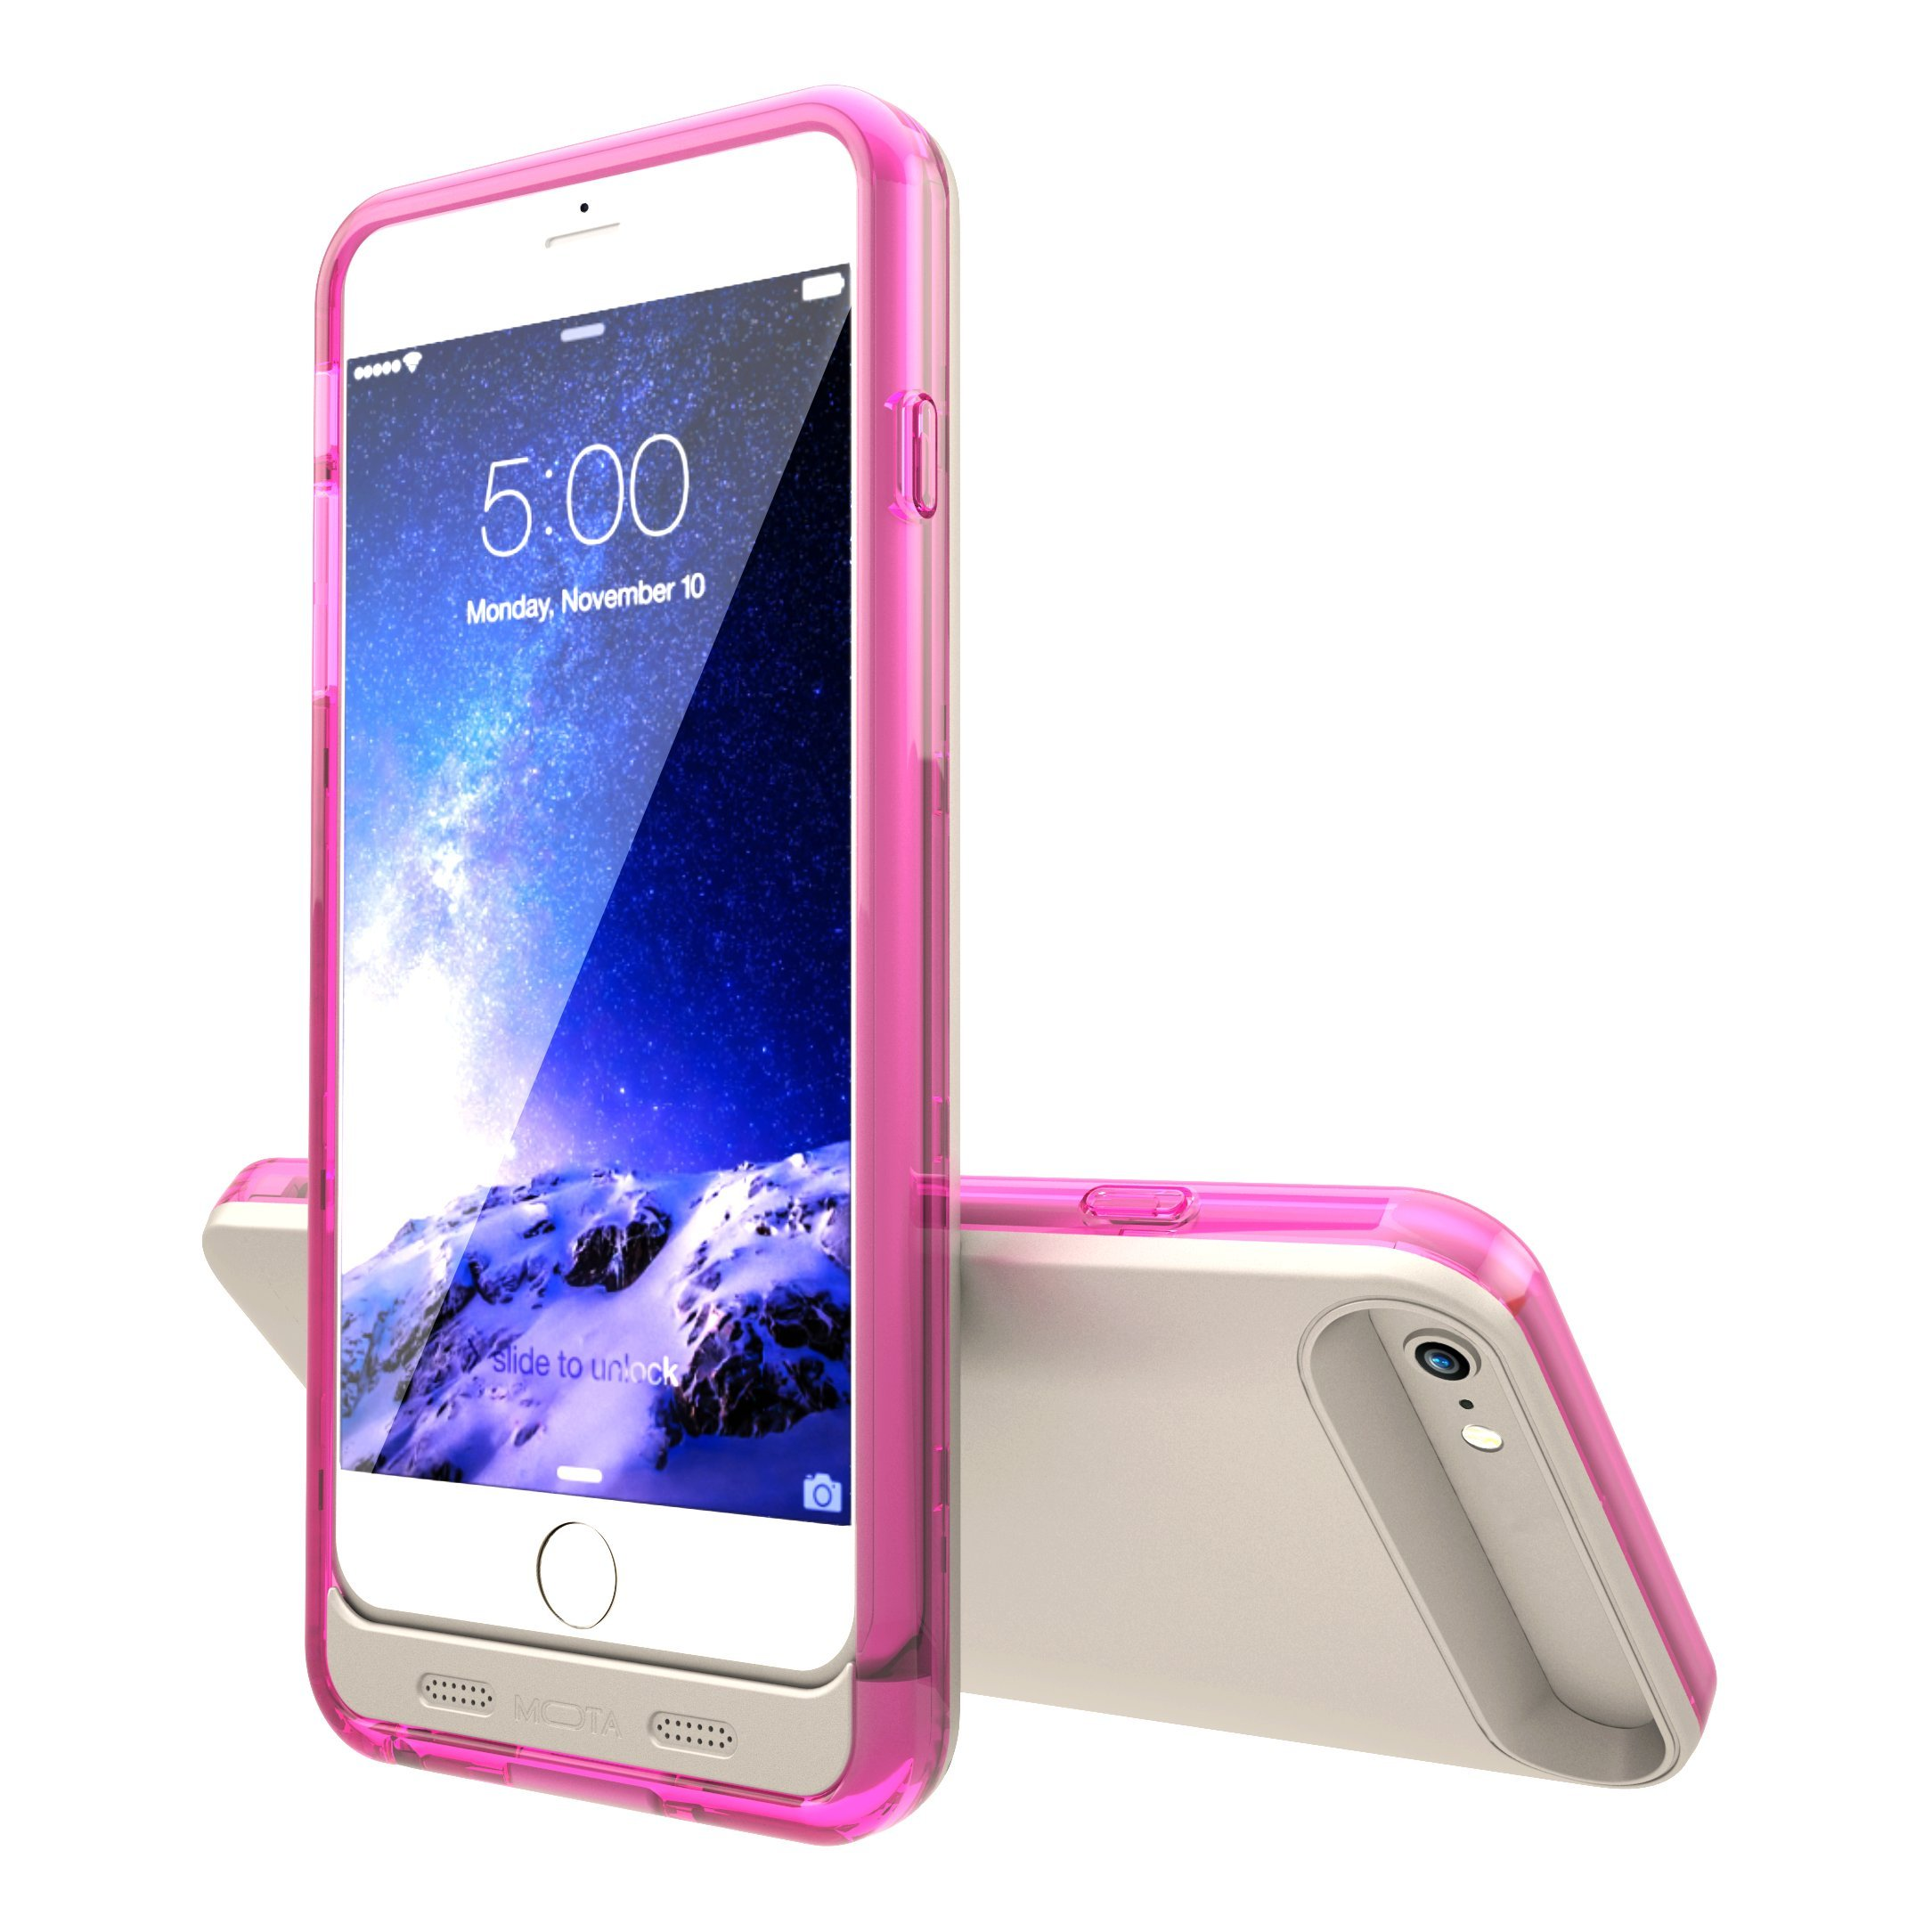 TAMO iPhone 6/6s Extended Battery Case, TAMO 2400 mAh dual-purposed Ultra-Slim Protective Extended Battery Case - Pink - Battery - Retail Packaging - Pink by TAMO (Image #5)